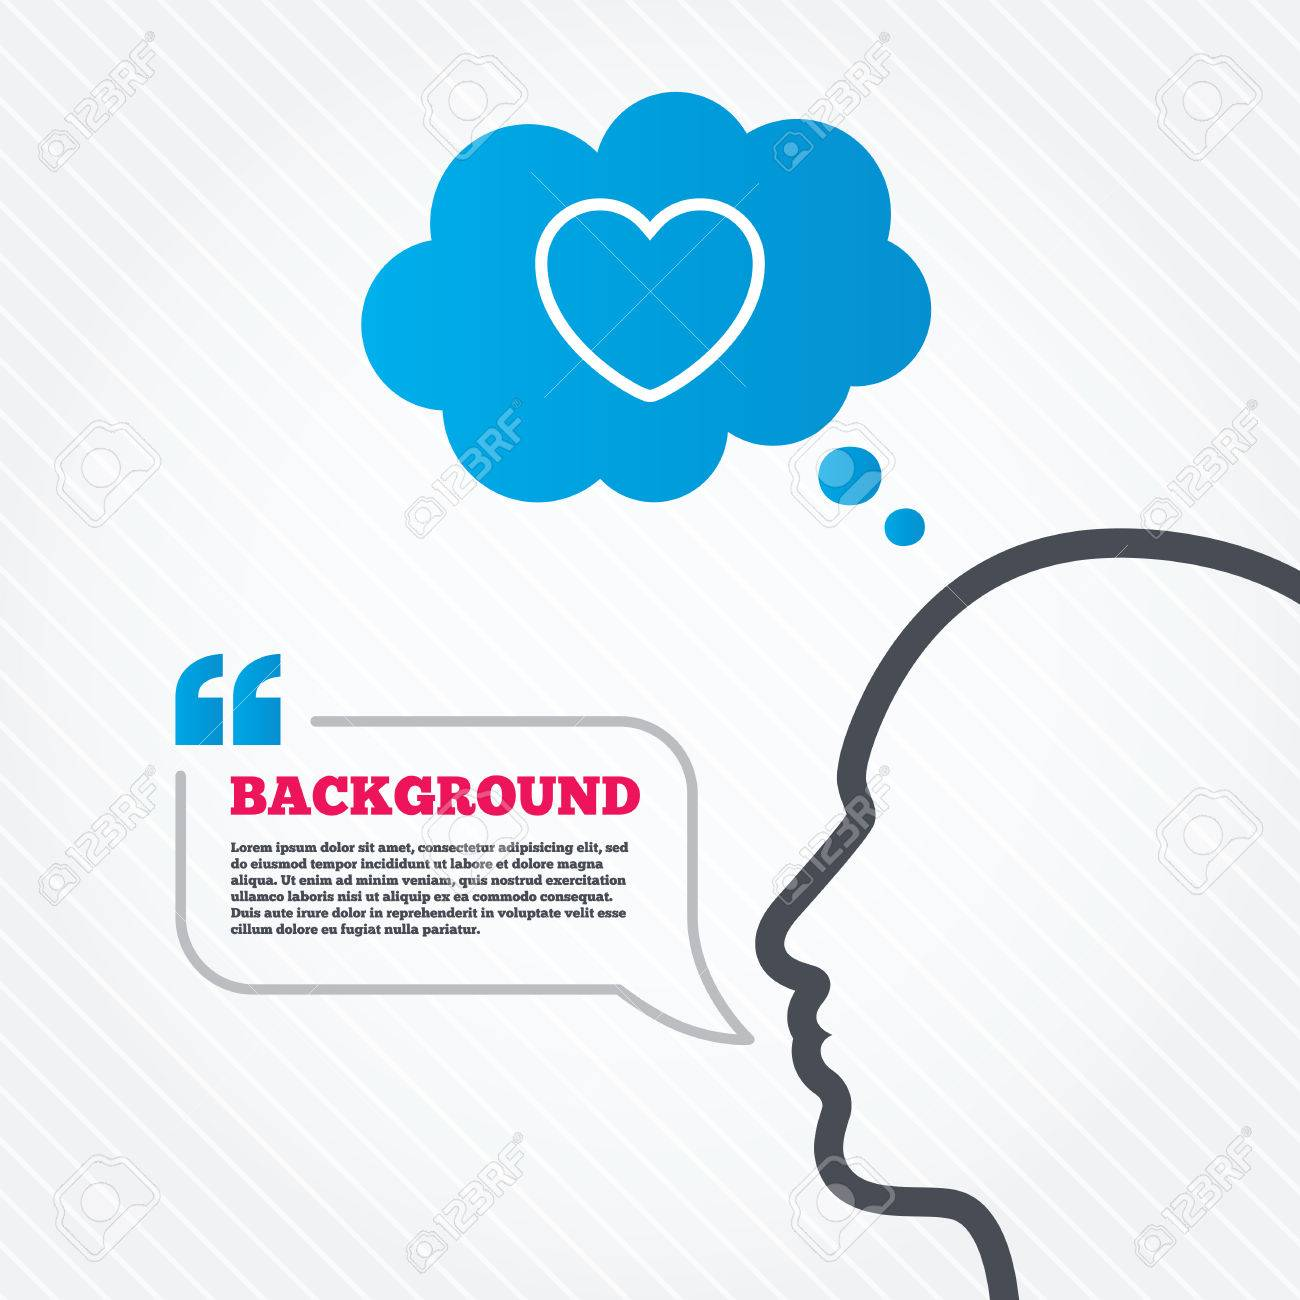 Head with speech bubble Heart sign icon Love symbol Think background with quotes